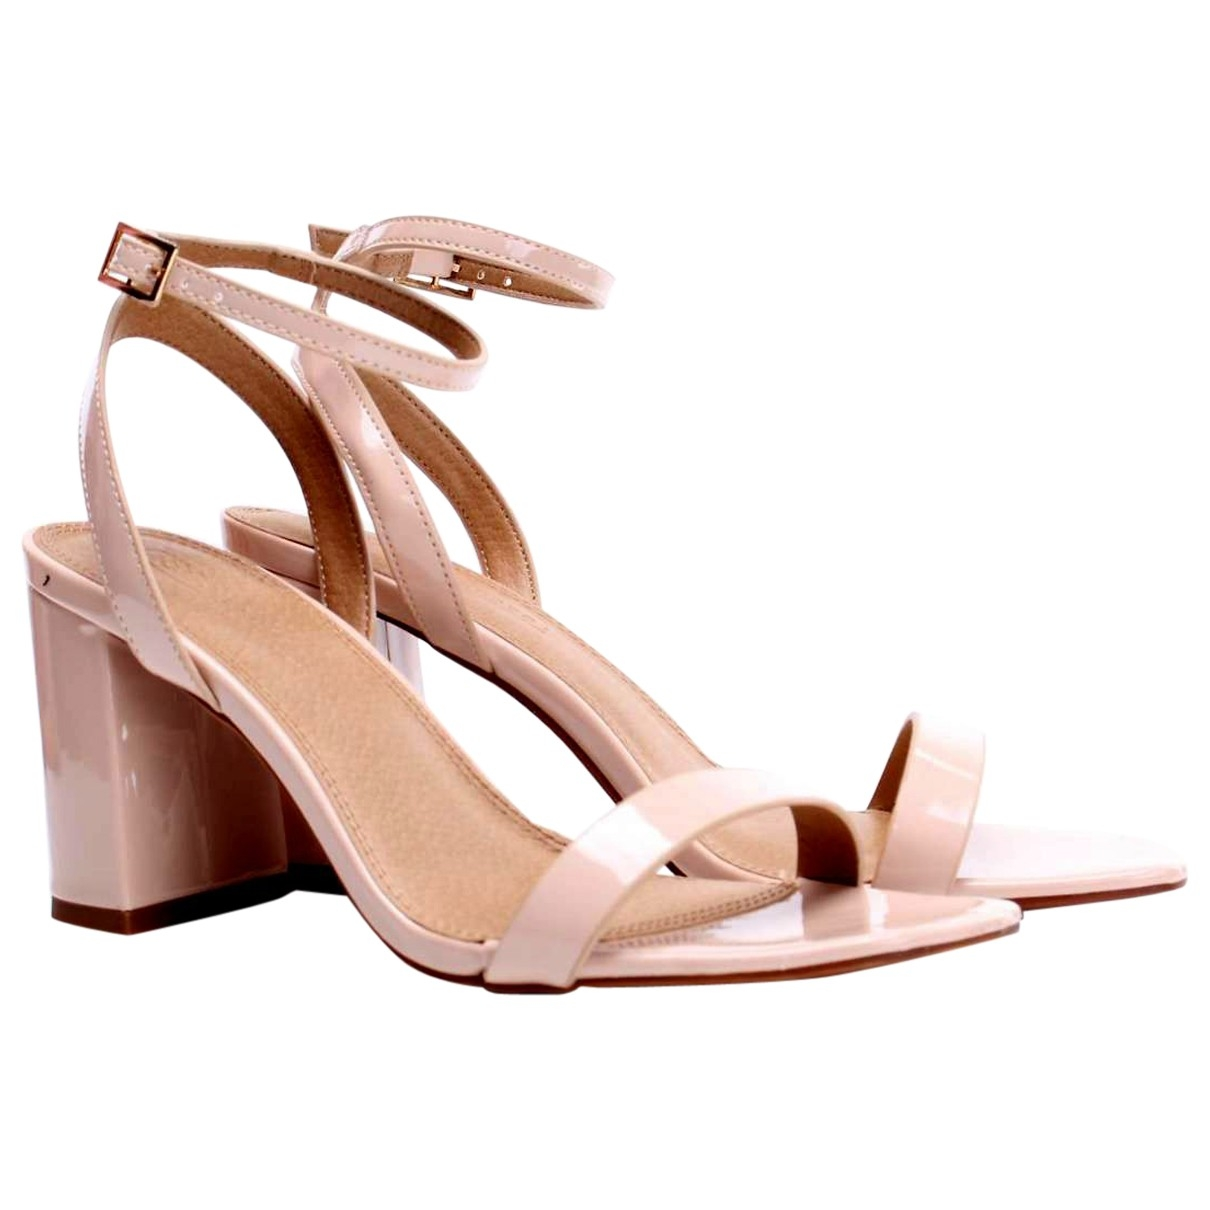 Asos \N Pink Leather Sandals for Women 4.5 UK